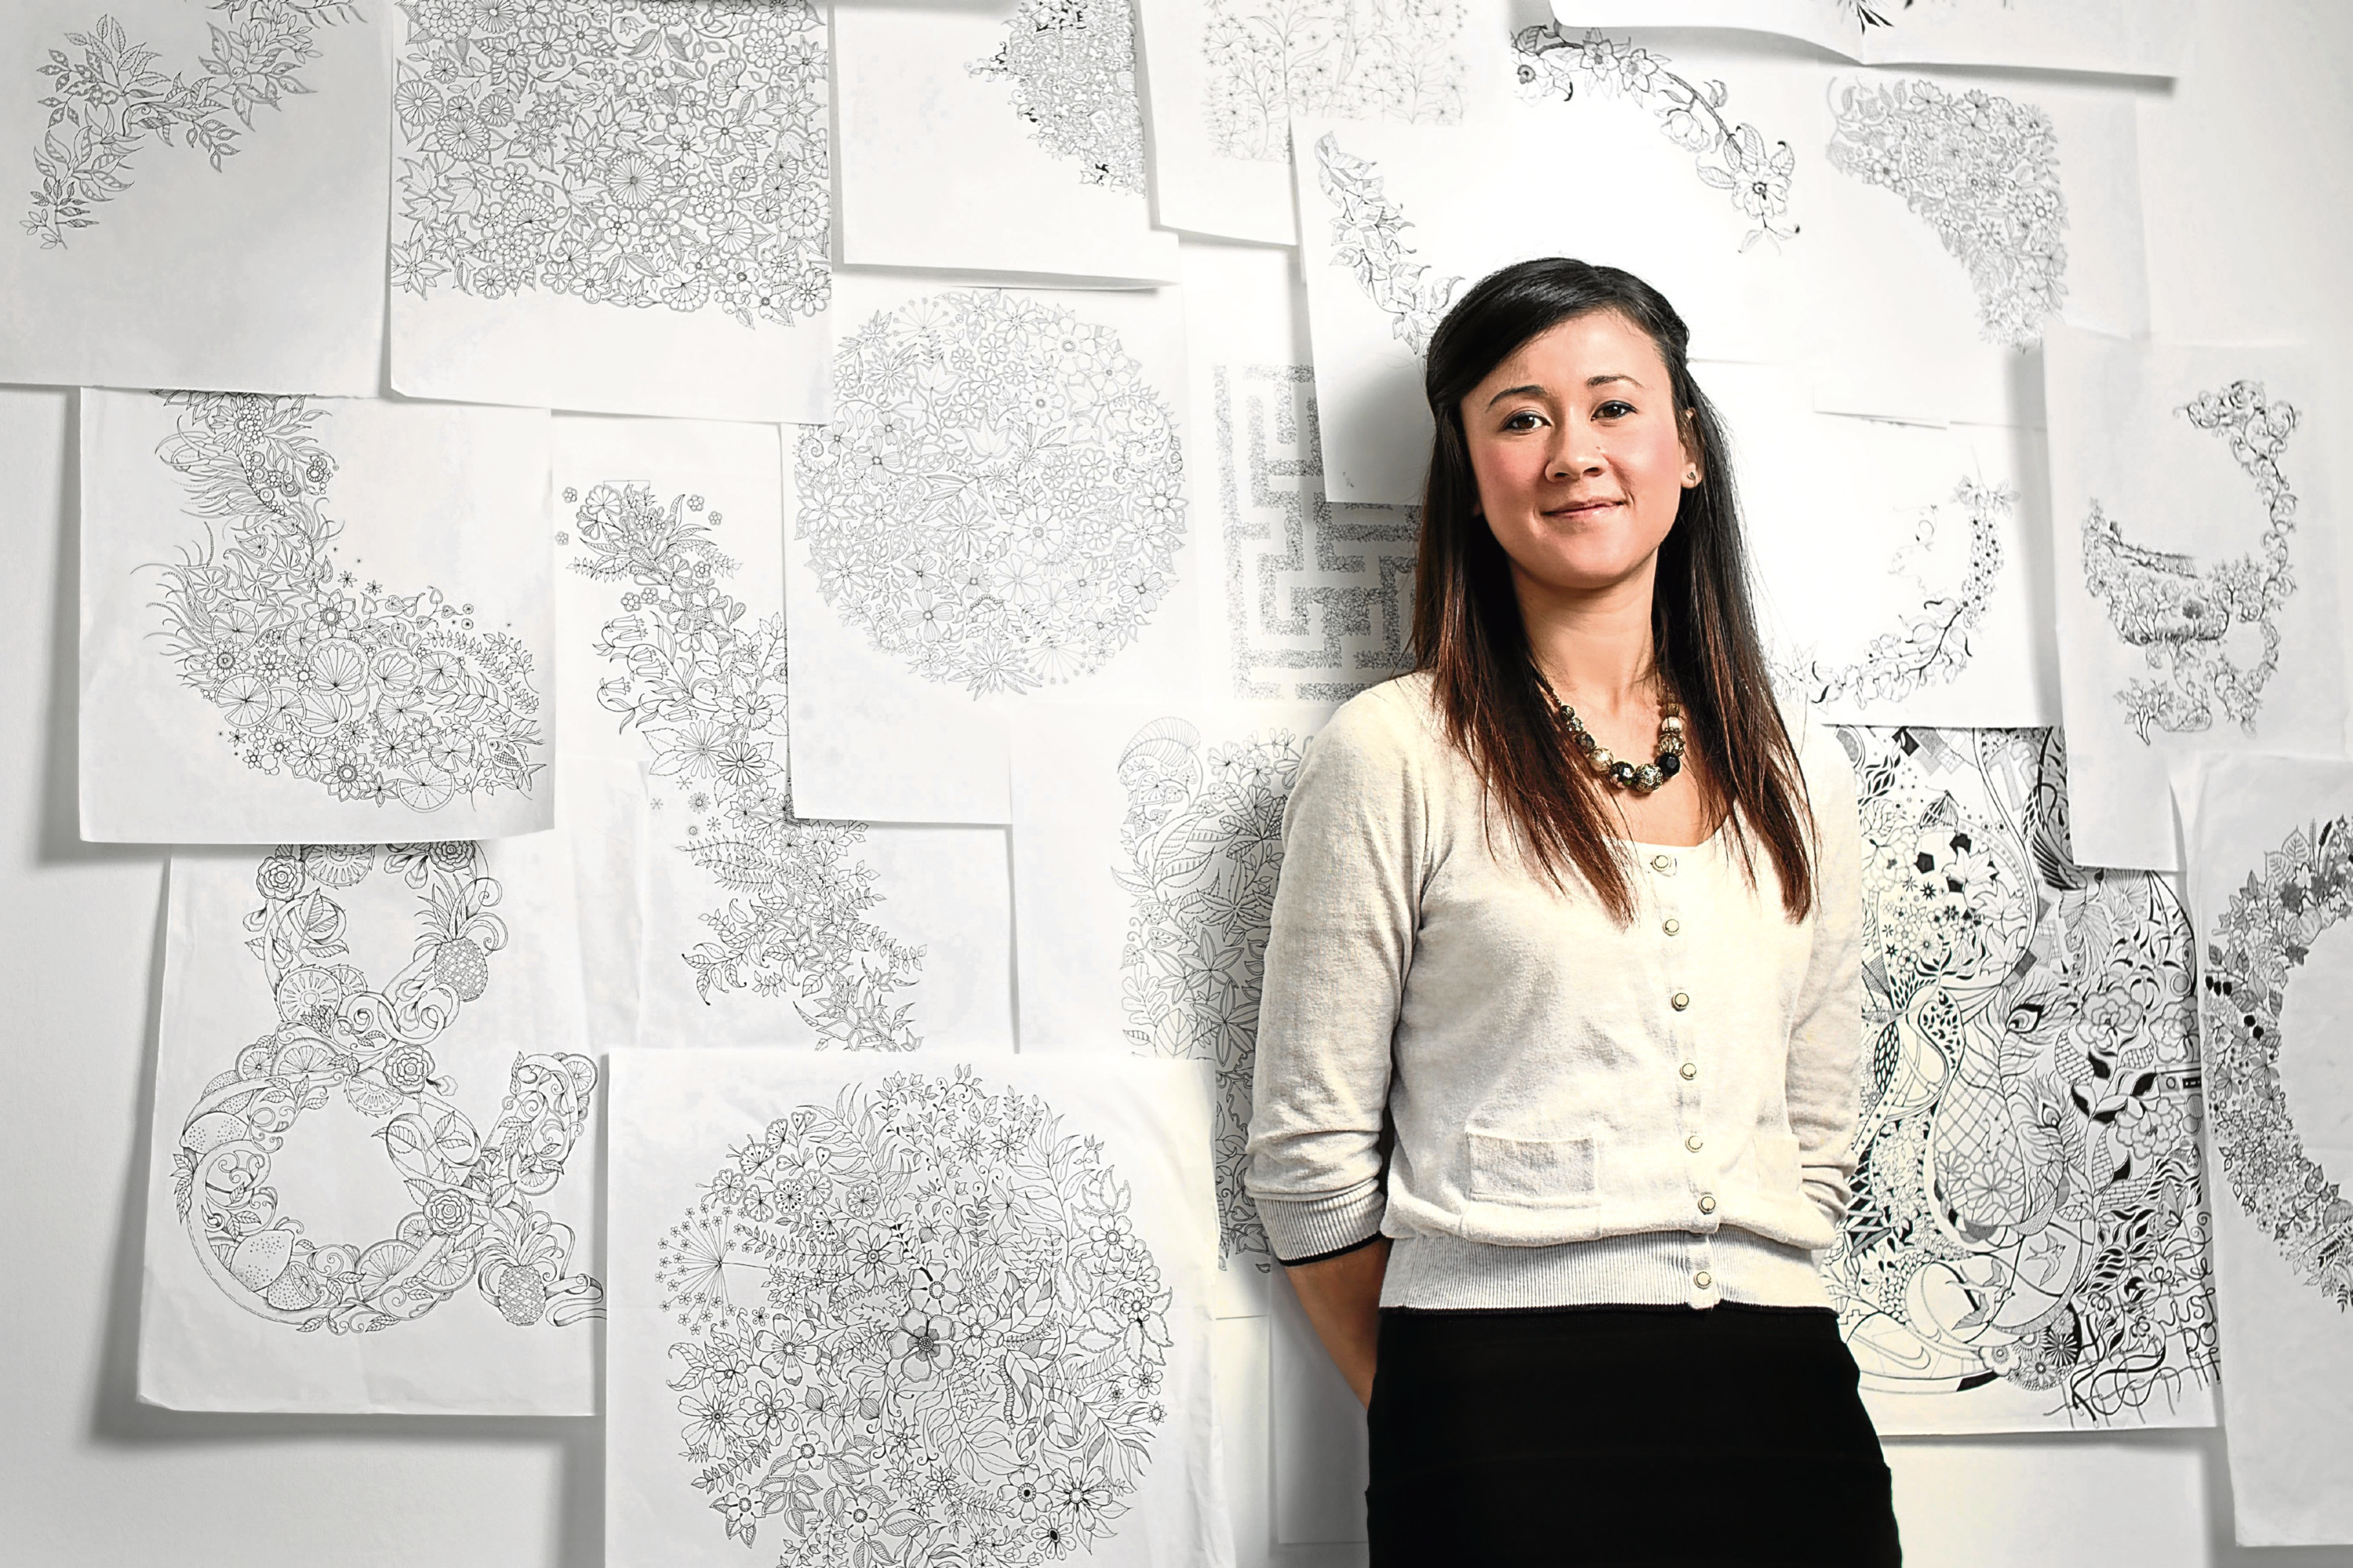 Johanna Basford is the founder of the adult colouring in craze that's been taking the UK by storm over the last year.  While some publishers are reporting sales of 300,000 of their best-selling colouring books, Johanna has blown all other titles out of the water selling over 1 million copies of her debut title Secret Garden in 14 different languages across the globe.  She made headlines back in 2013 when Parisian women went mad for her first colouring book, Secret Garden, meaning that she outsold France's bestselling cookery books, which is incredible. 5 March 2015